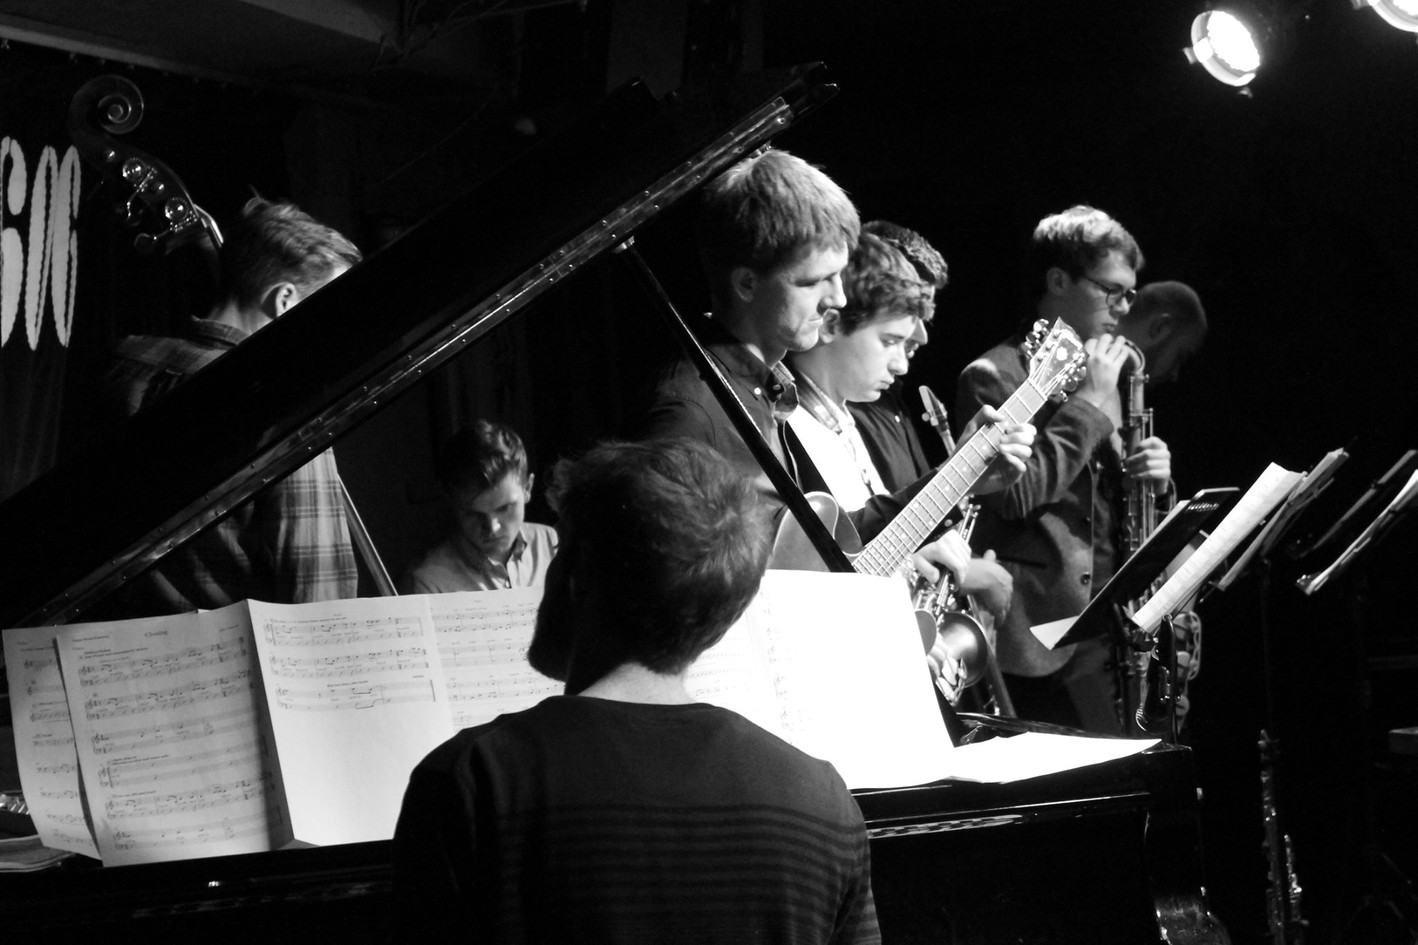 Billy Marrows Octet at the 606 Jazz Club 1